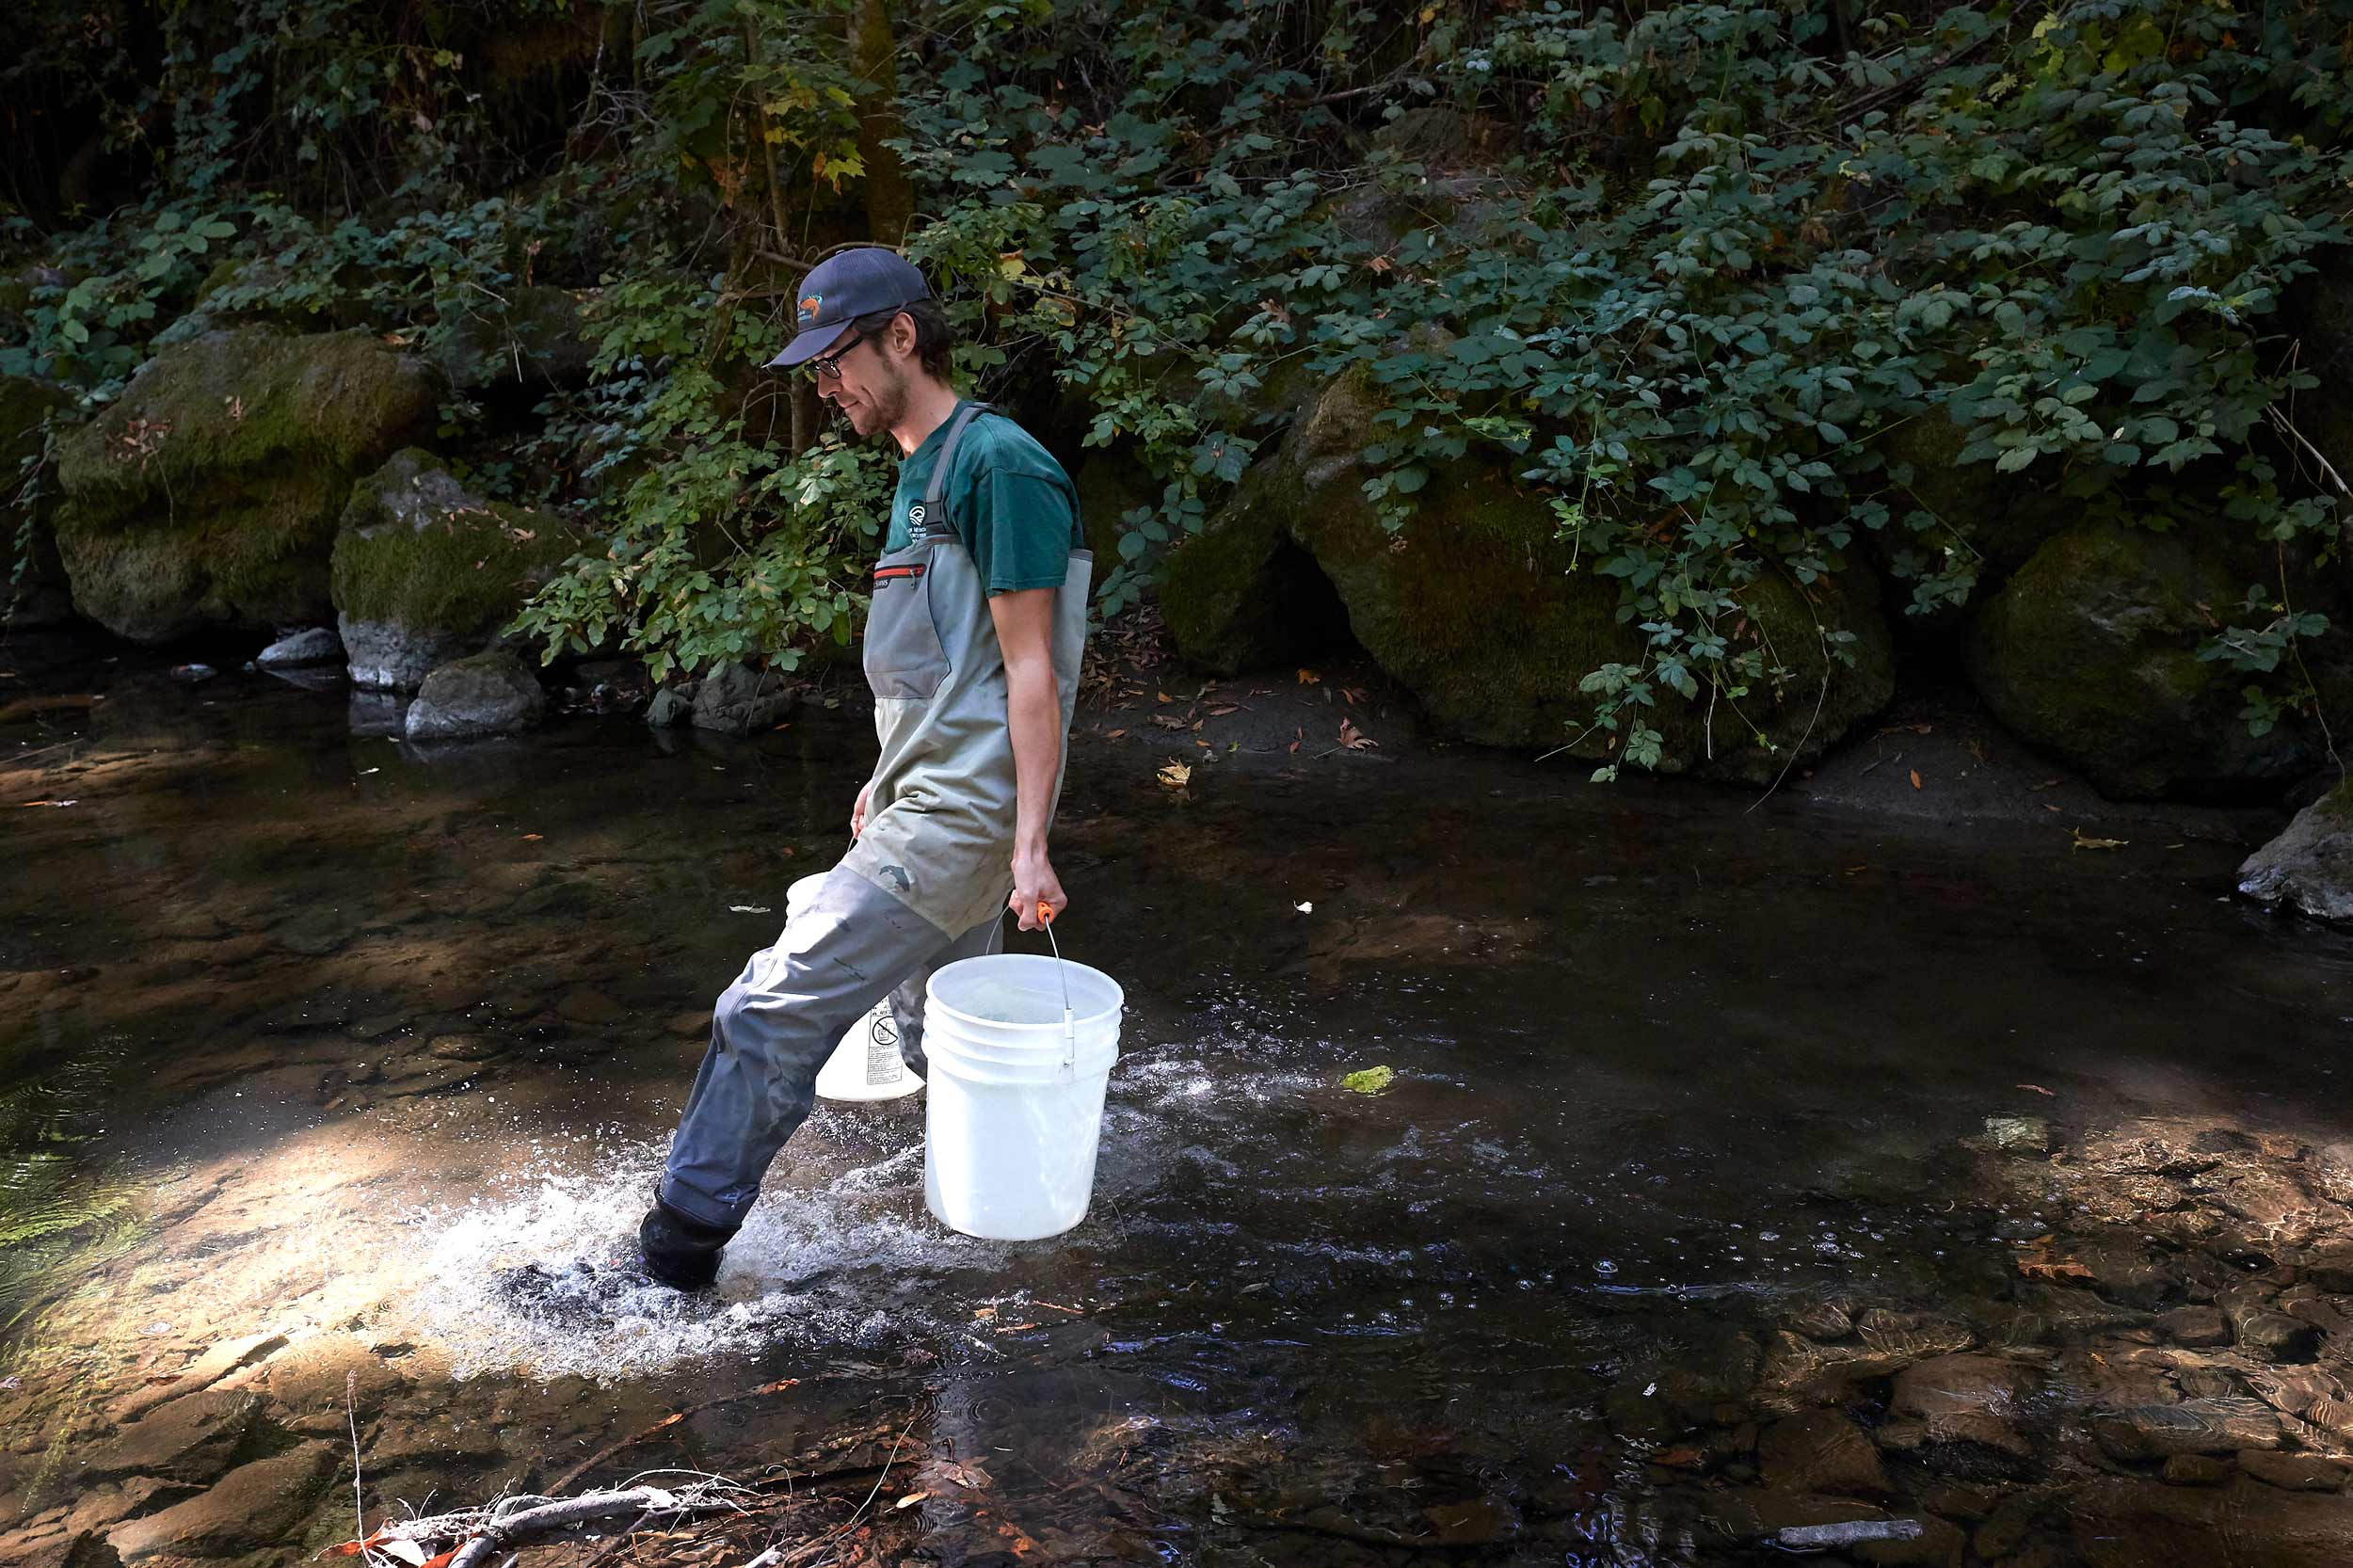 Scientist Wearing Waders Carries Buckets of Water